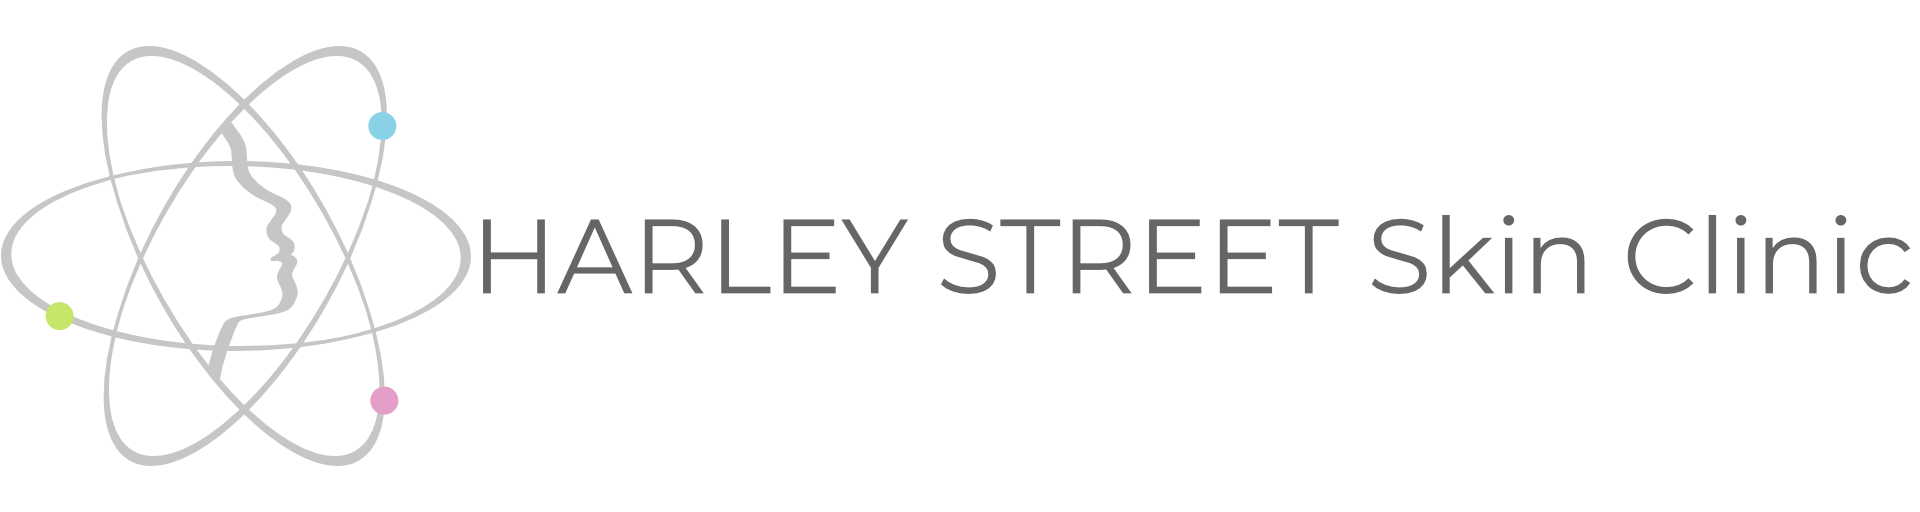 Harley Street Skin Clinic Ltd in Southend-On-Sea Leigh Westcliff Harley Street Skin Treatments